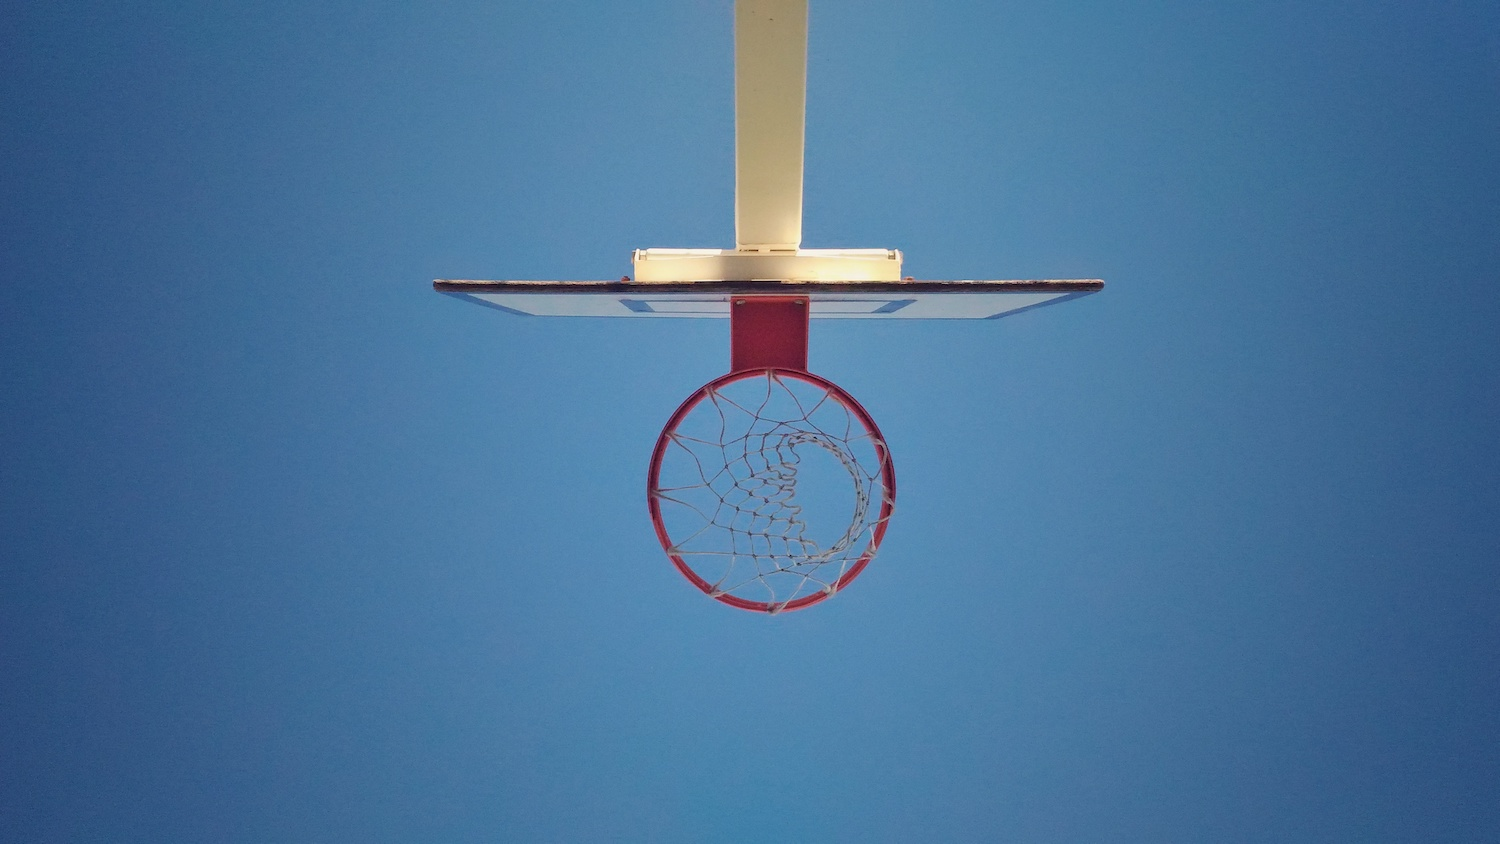 Basketball basket viewed from bottom to top against a blue sky